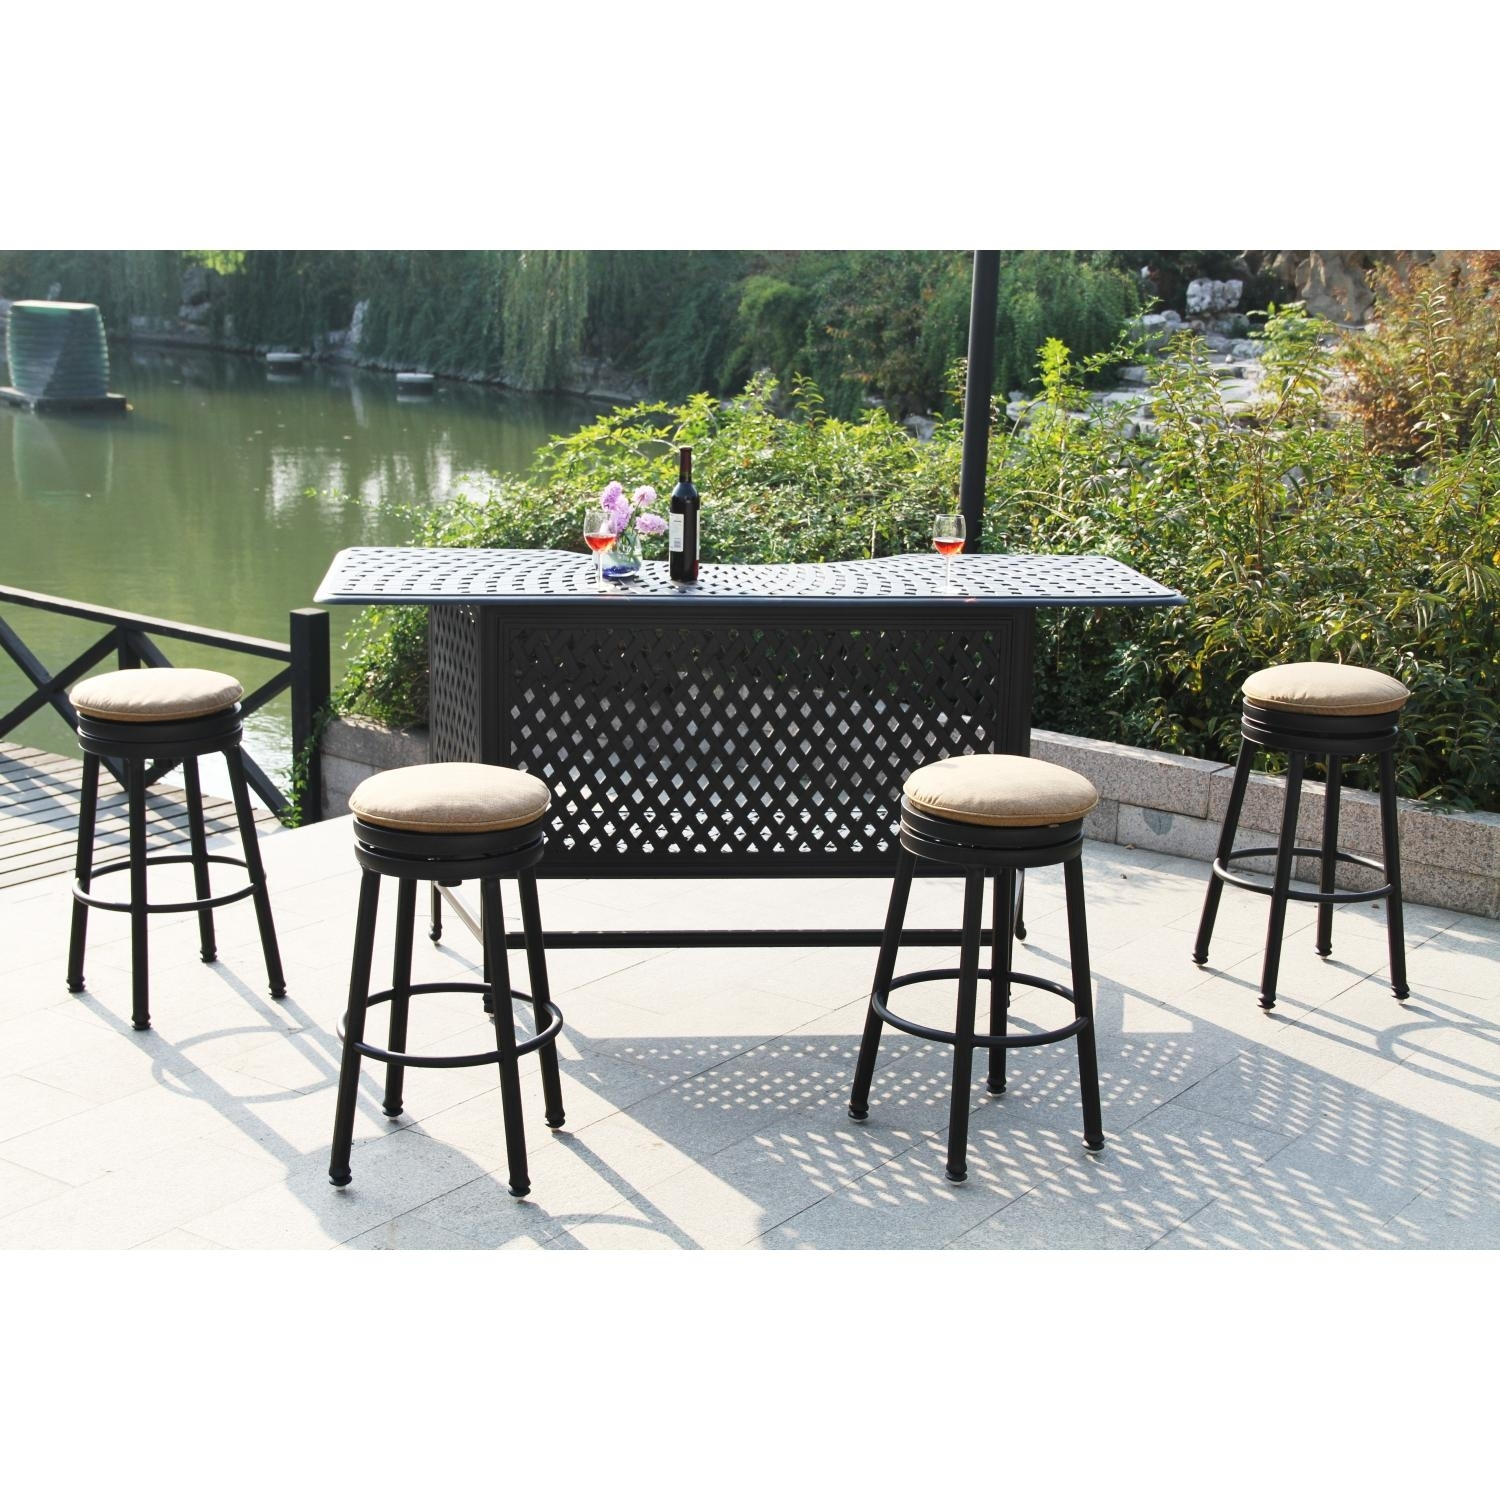 Image of: Elegant Outdoor Swivel Bar Stool Outdoor Furniture